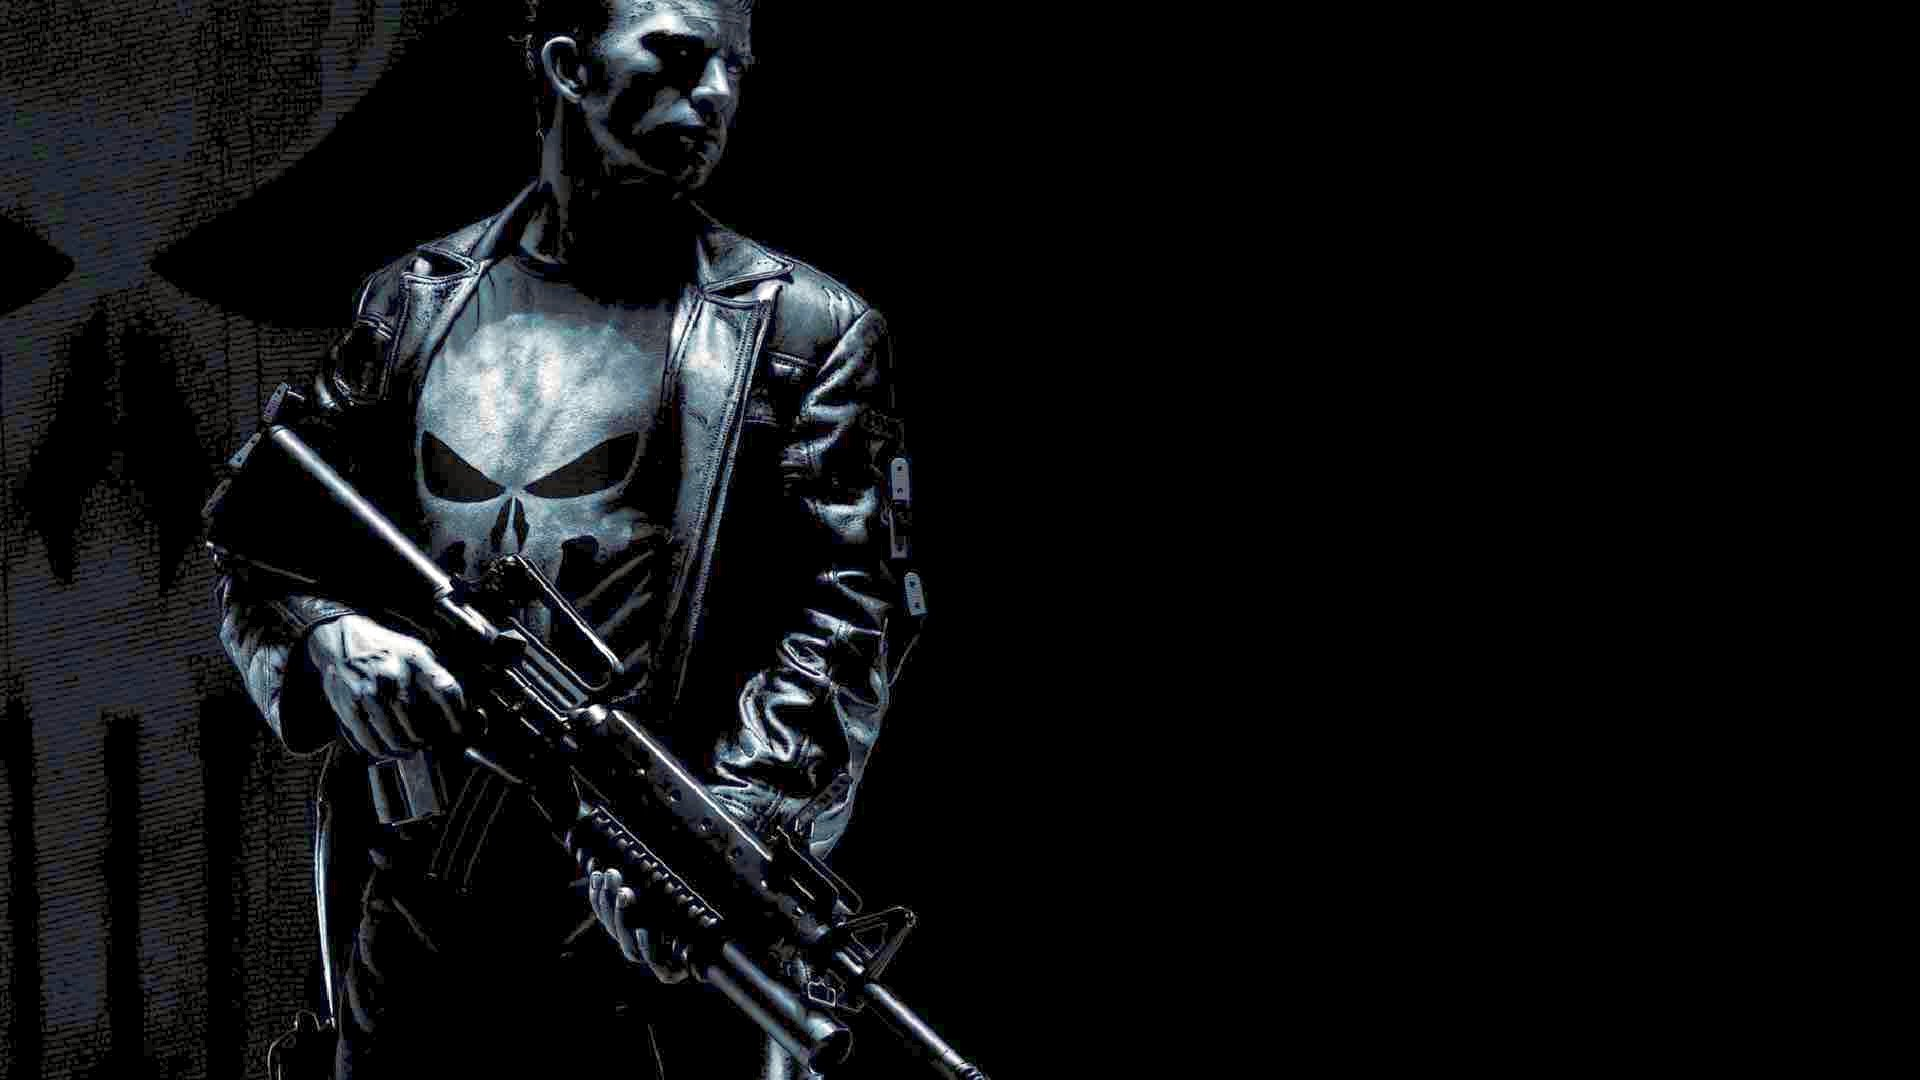 [48+] Punisher Wallpaper for Android on WallpaperSafari